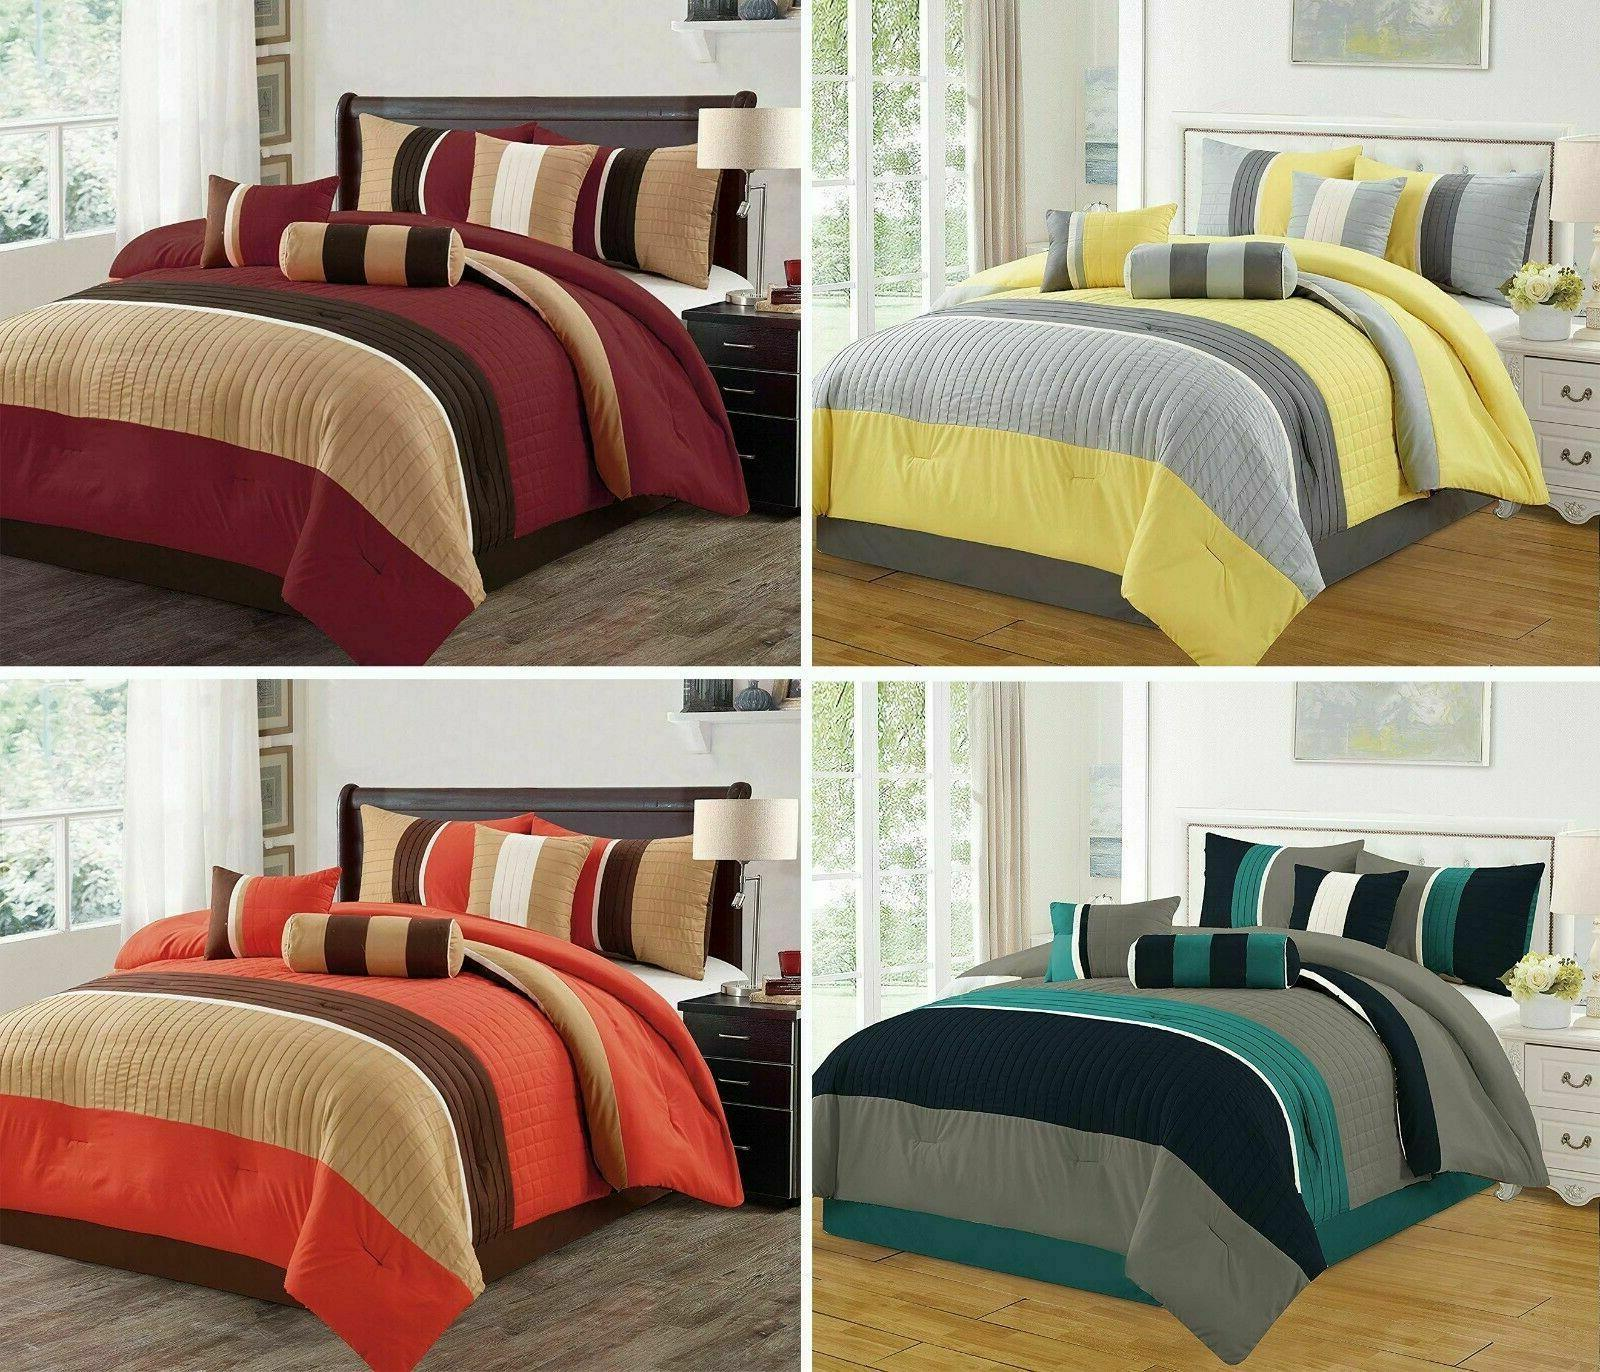 DCP 7 Piece Comforter Set Complete Bed in a Bag Stripe Plaid